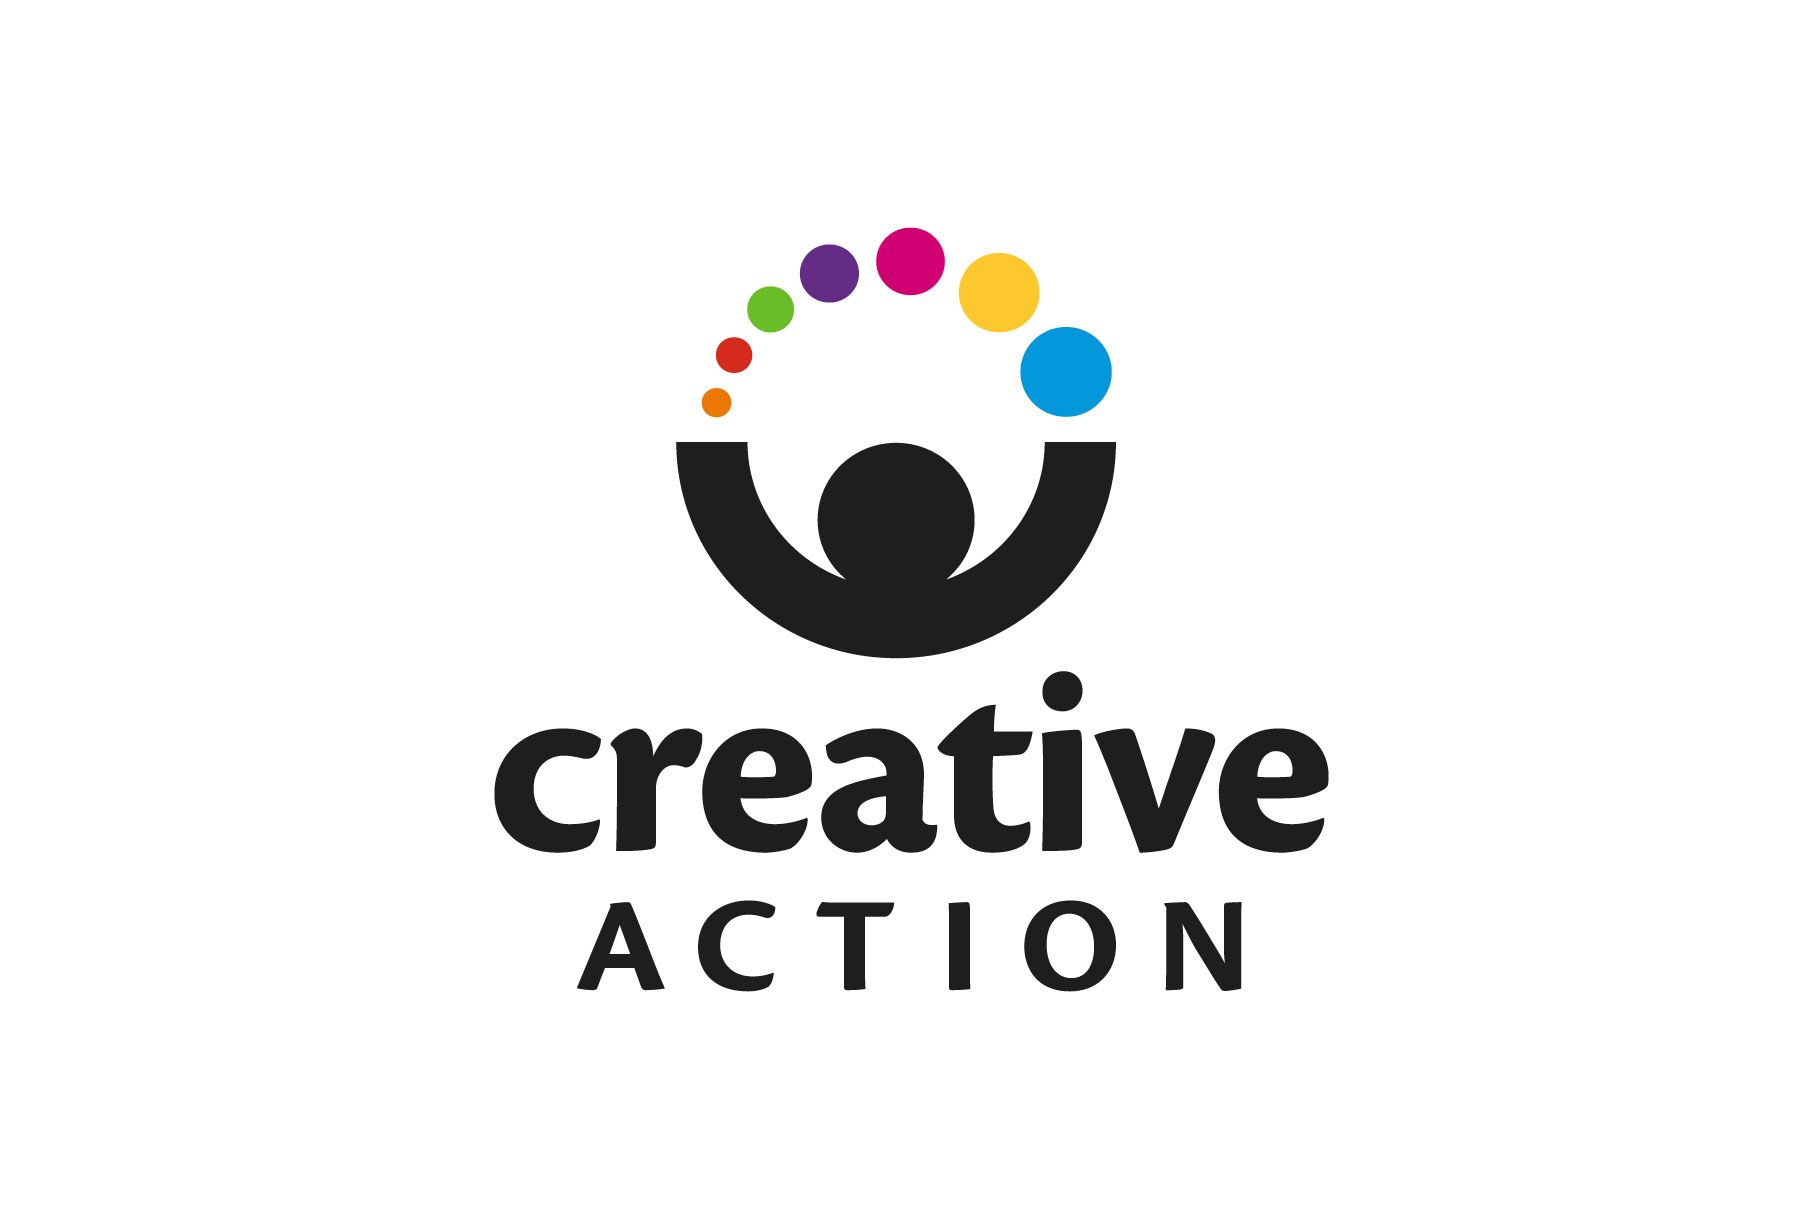 Creative Action is an NGO that inspires kids through the